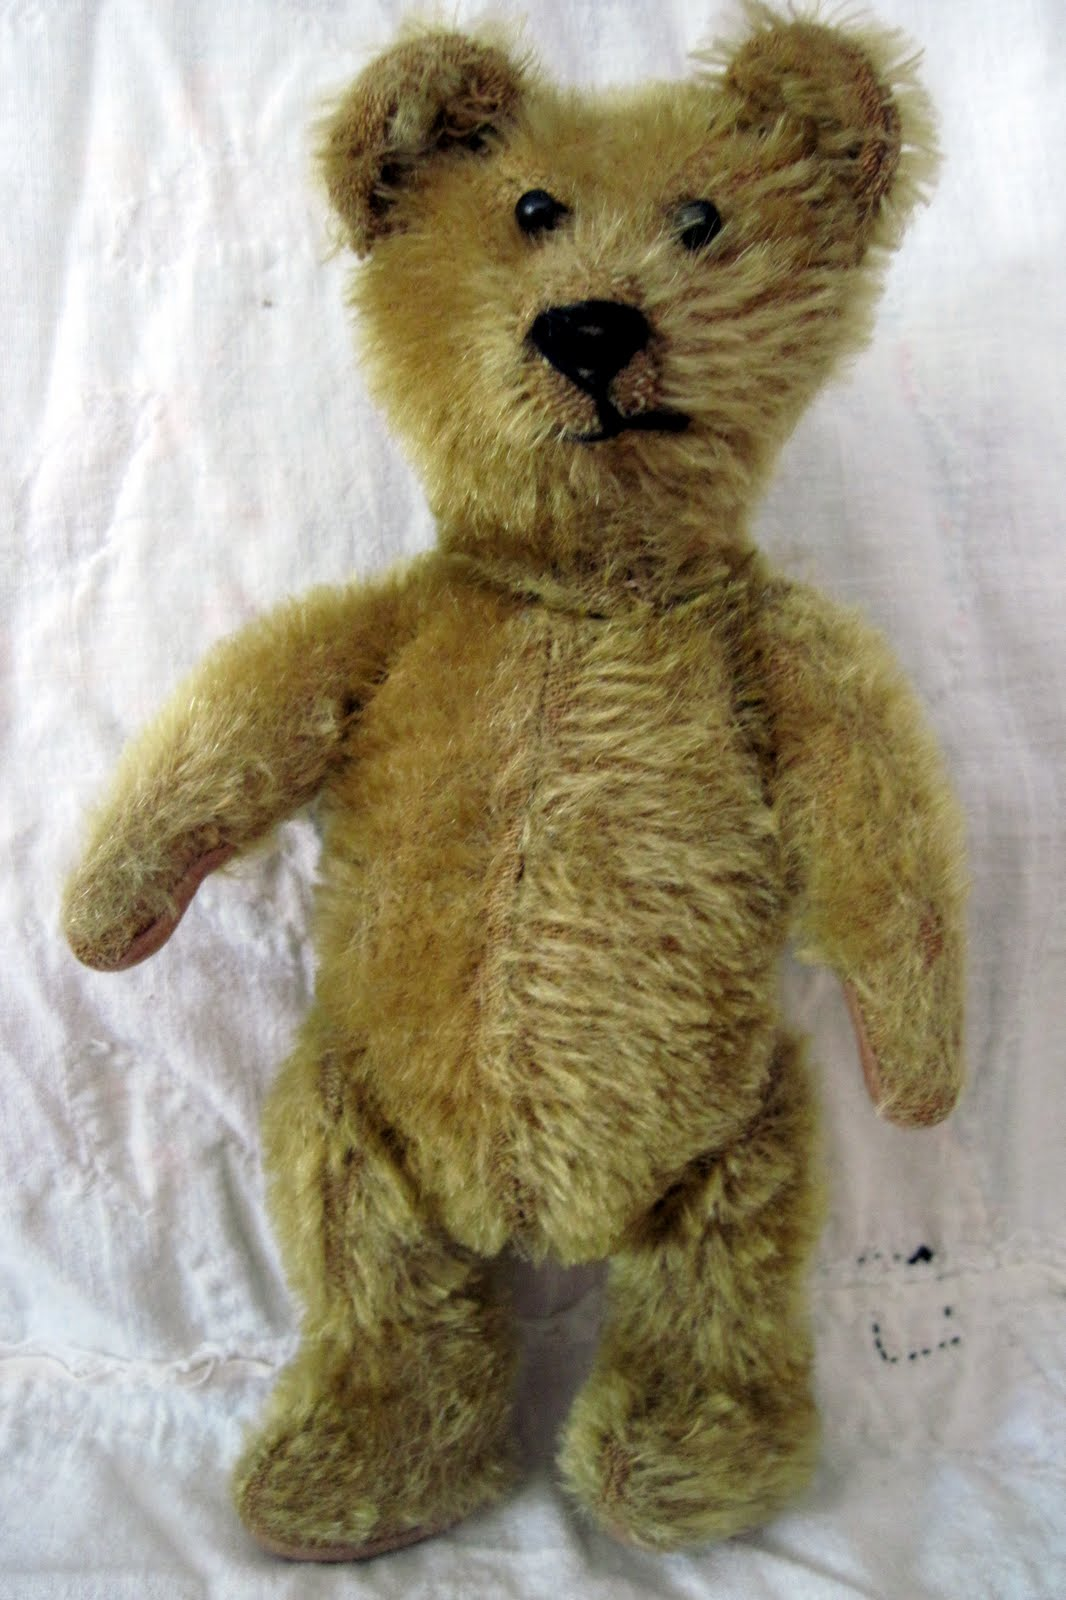 Tracy's Toys (and Some Other Stuff): Funny Little British Bear